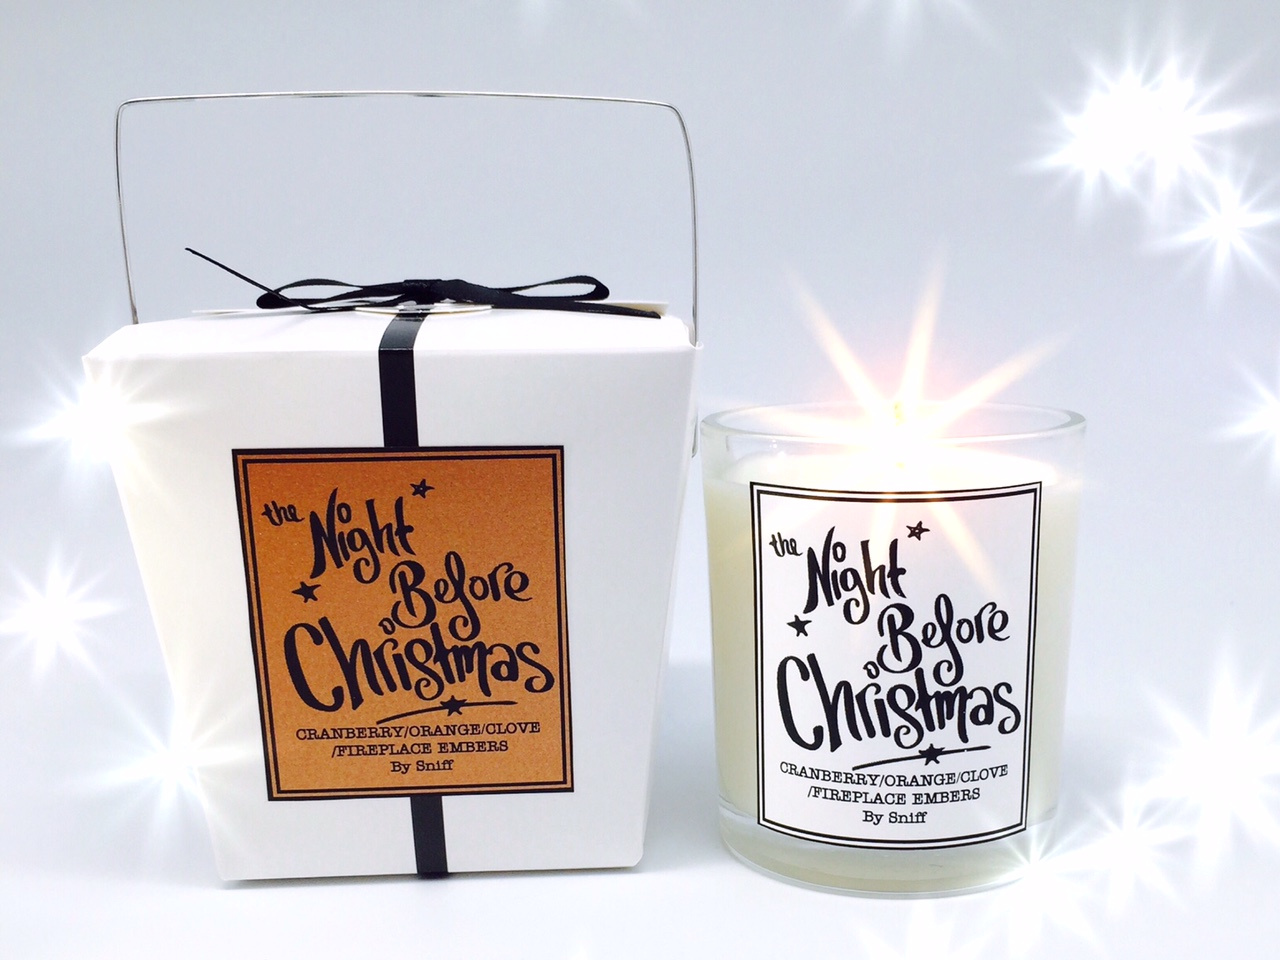 THE NIGHT BEFORE CHRISTMAS SNIFF CANDLE